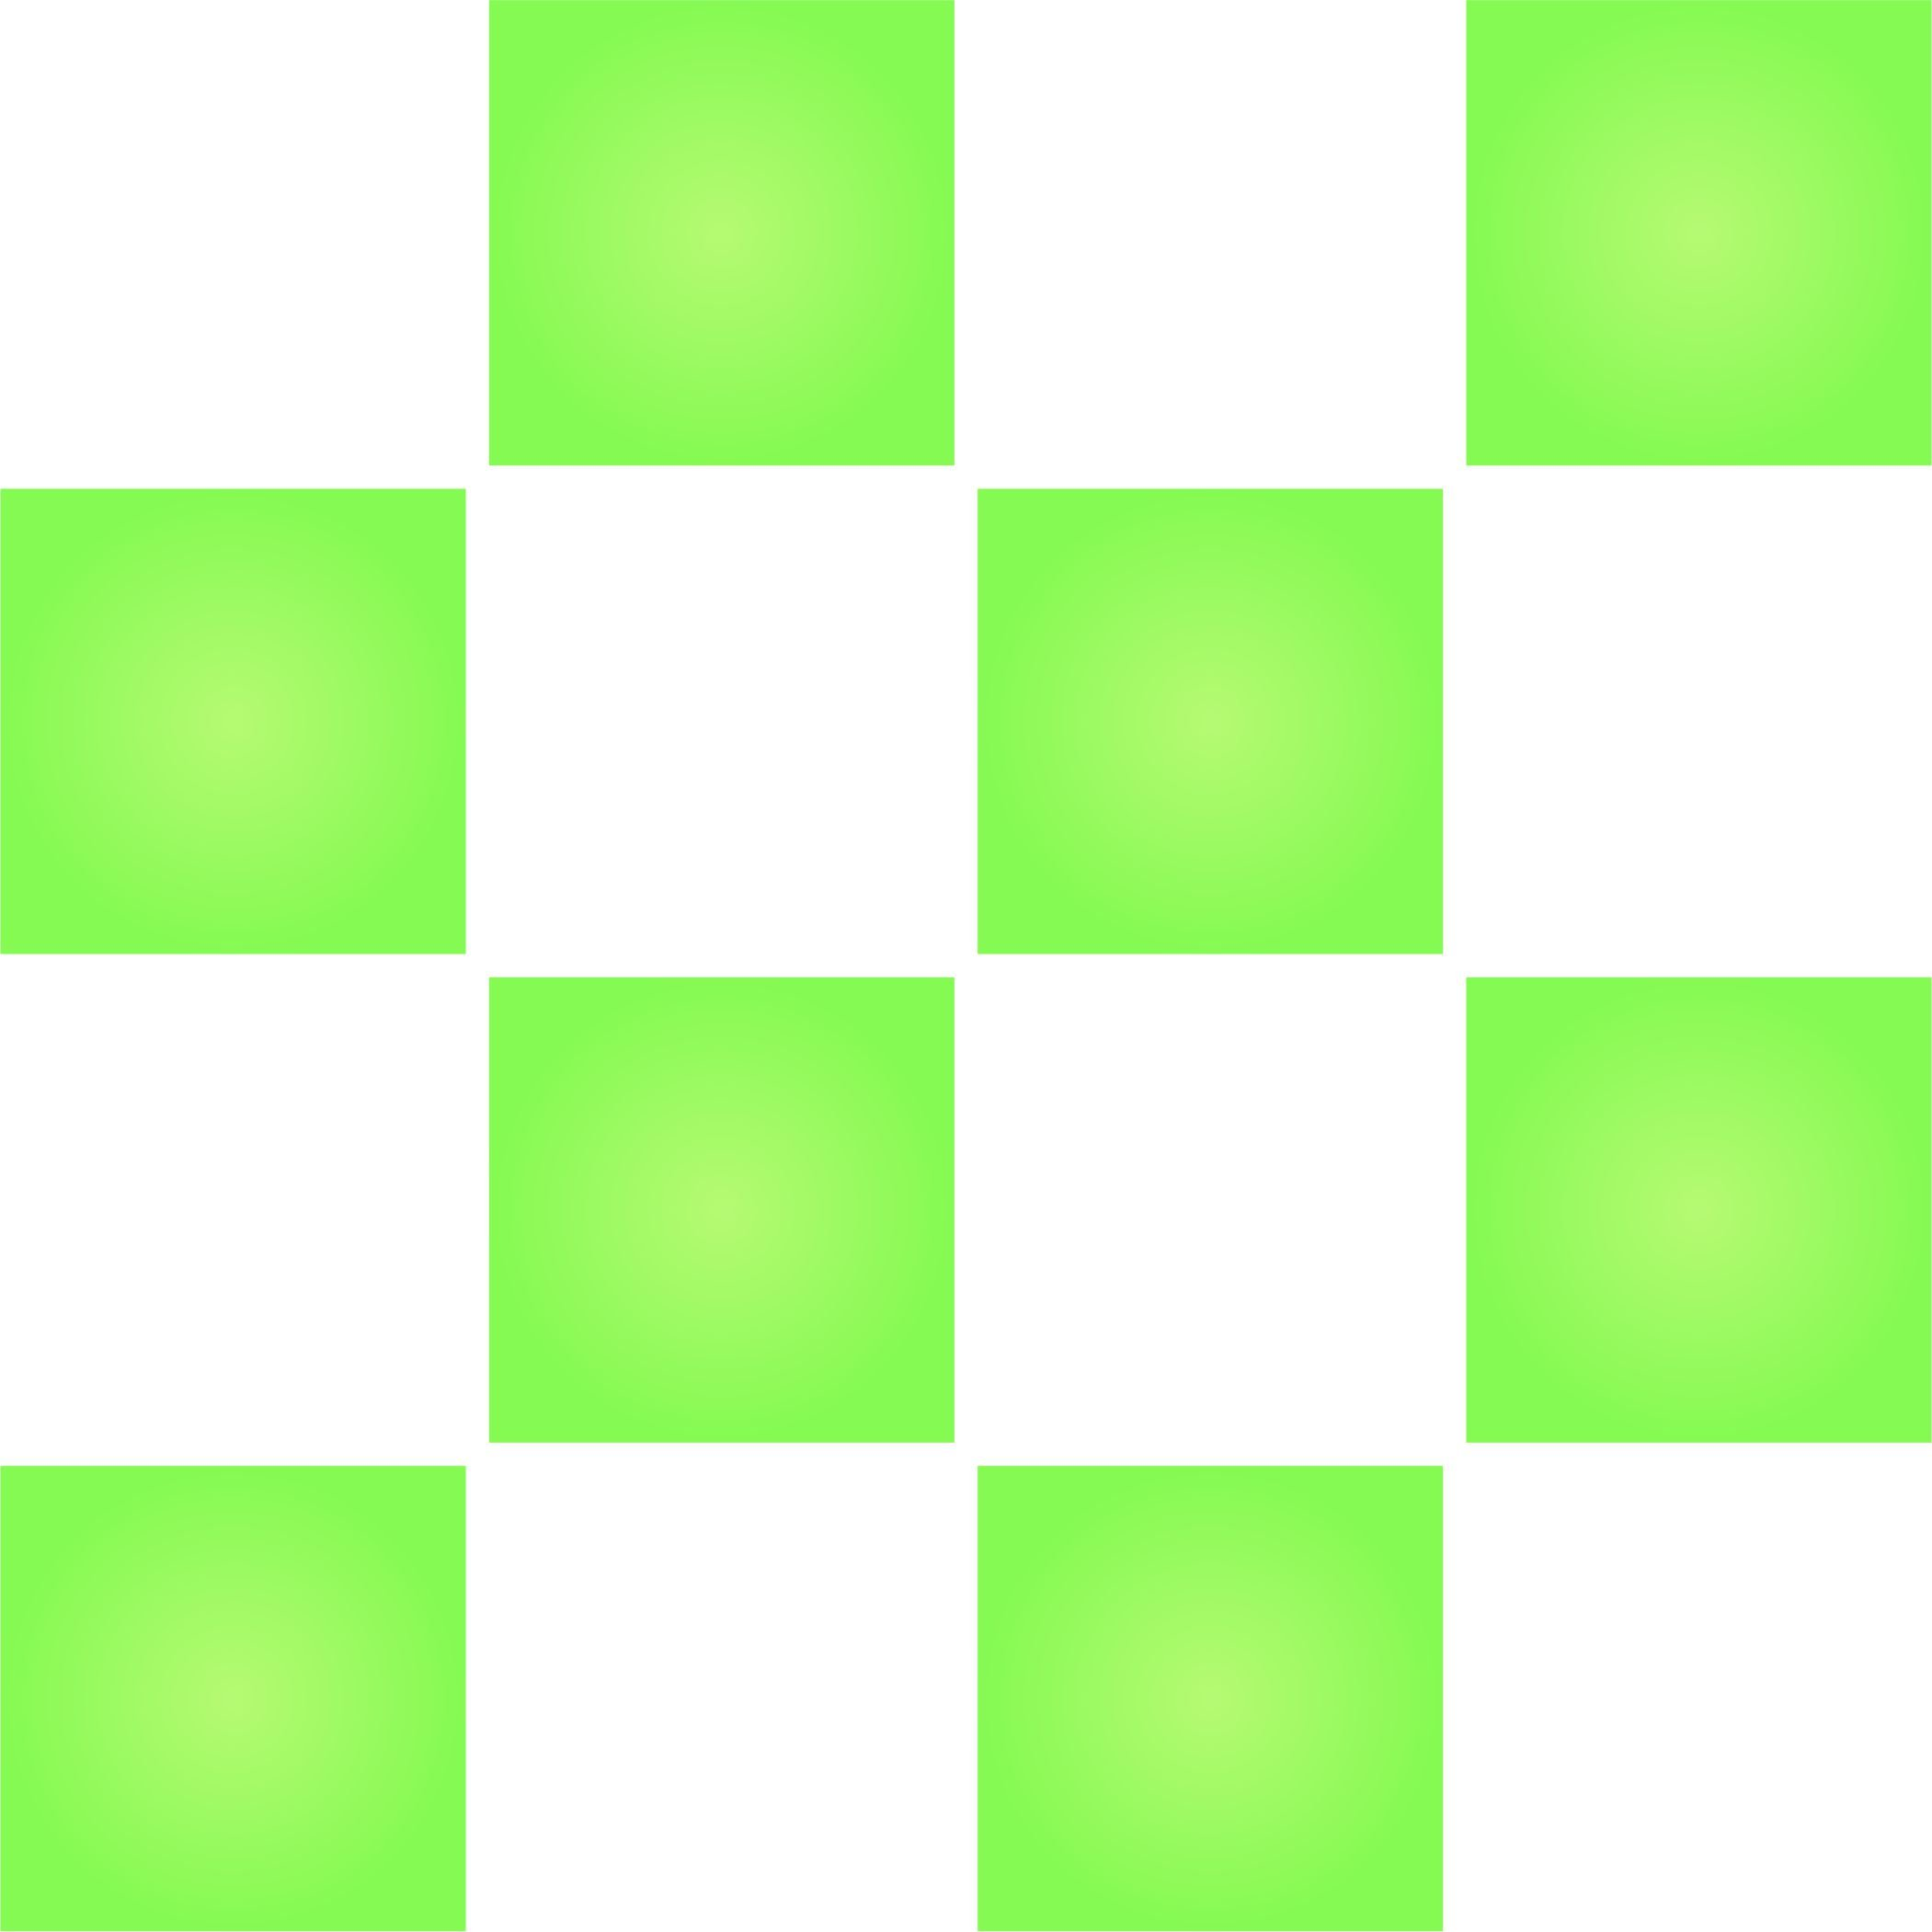 """LARGE SQUARES STENCIL (size 7""""w x 7""""h) Reusable Stencils for Painting - Best Quality Checkerboard Wall Art Décor Ideas - Use on Walls, Floors, Fabrics, Glass, Wood, Posters, and More…"""